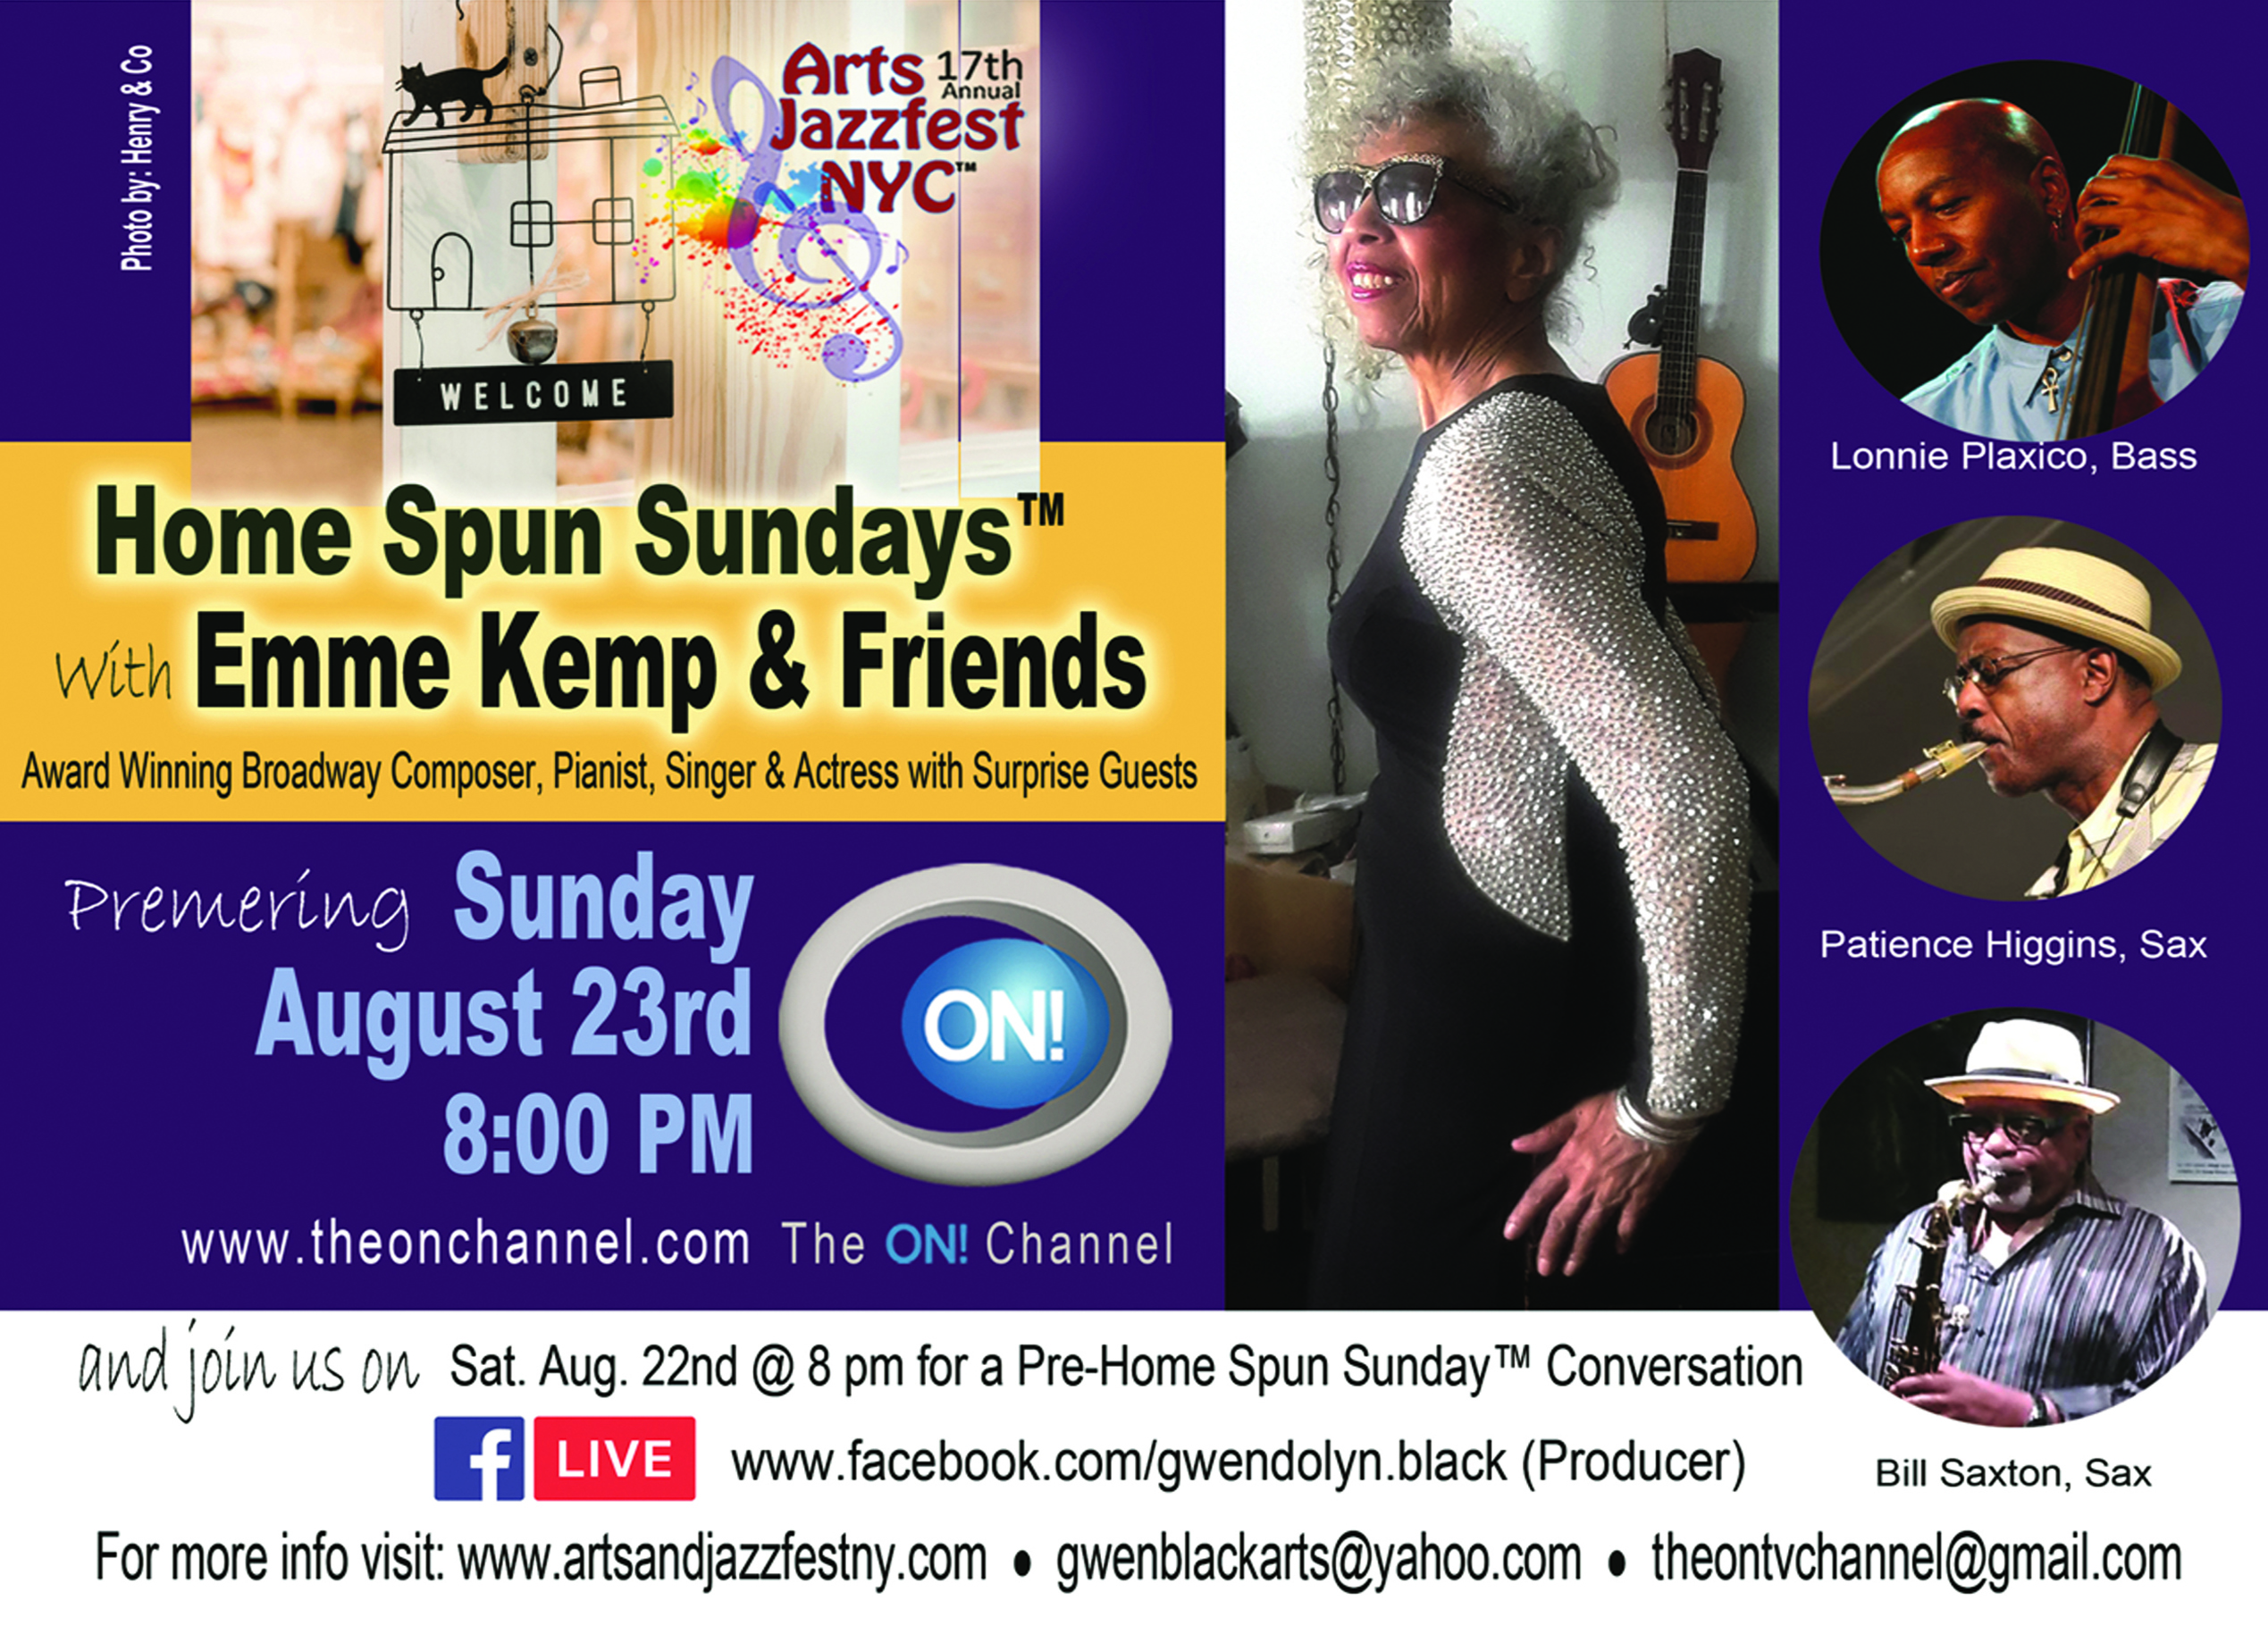 Emme Kemp With Lonnie Plaxico, Patience Higgins, Bill Saxon And More!